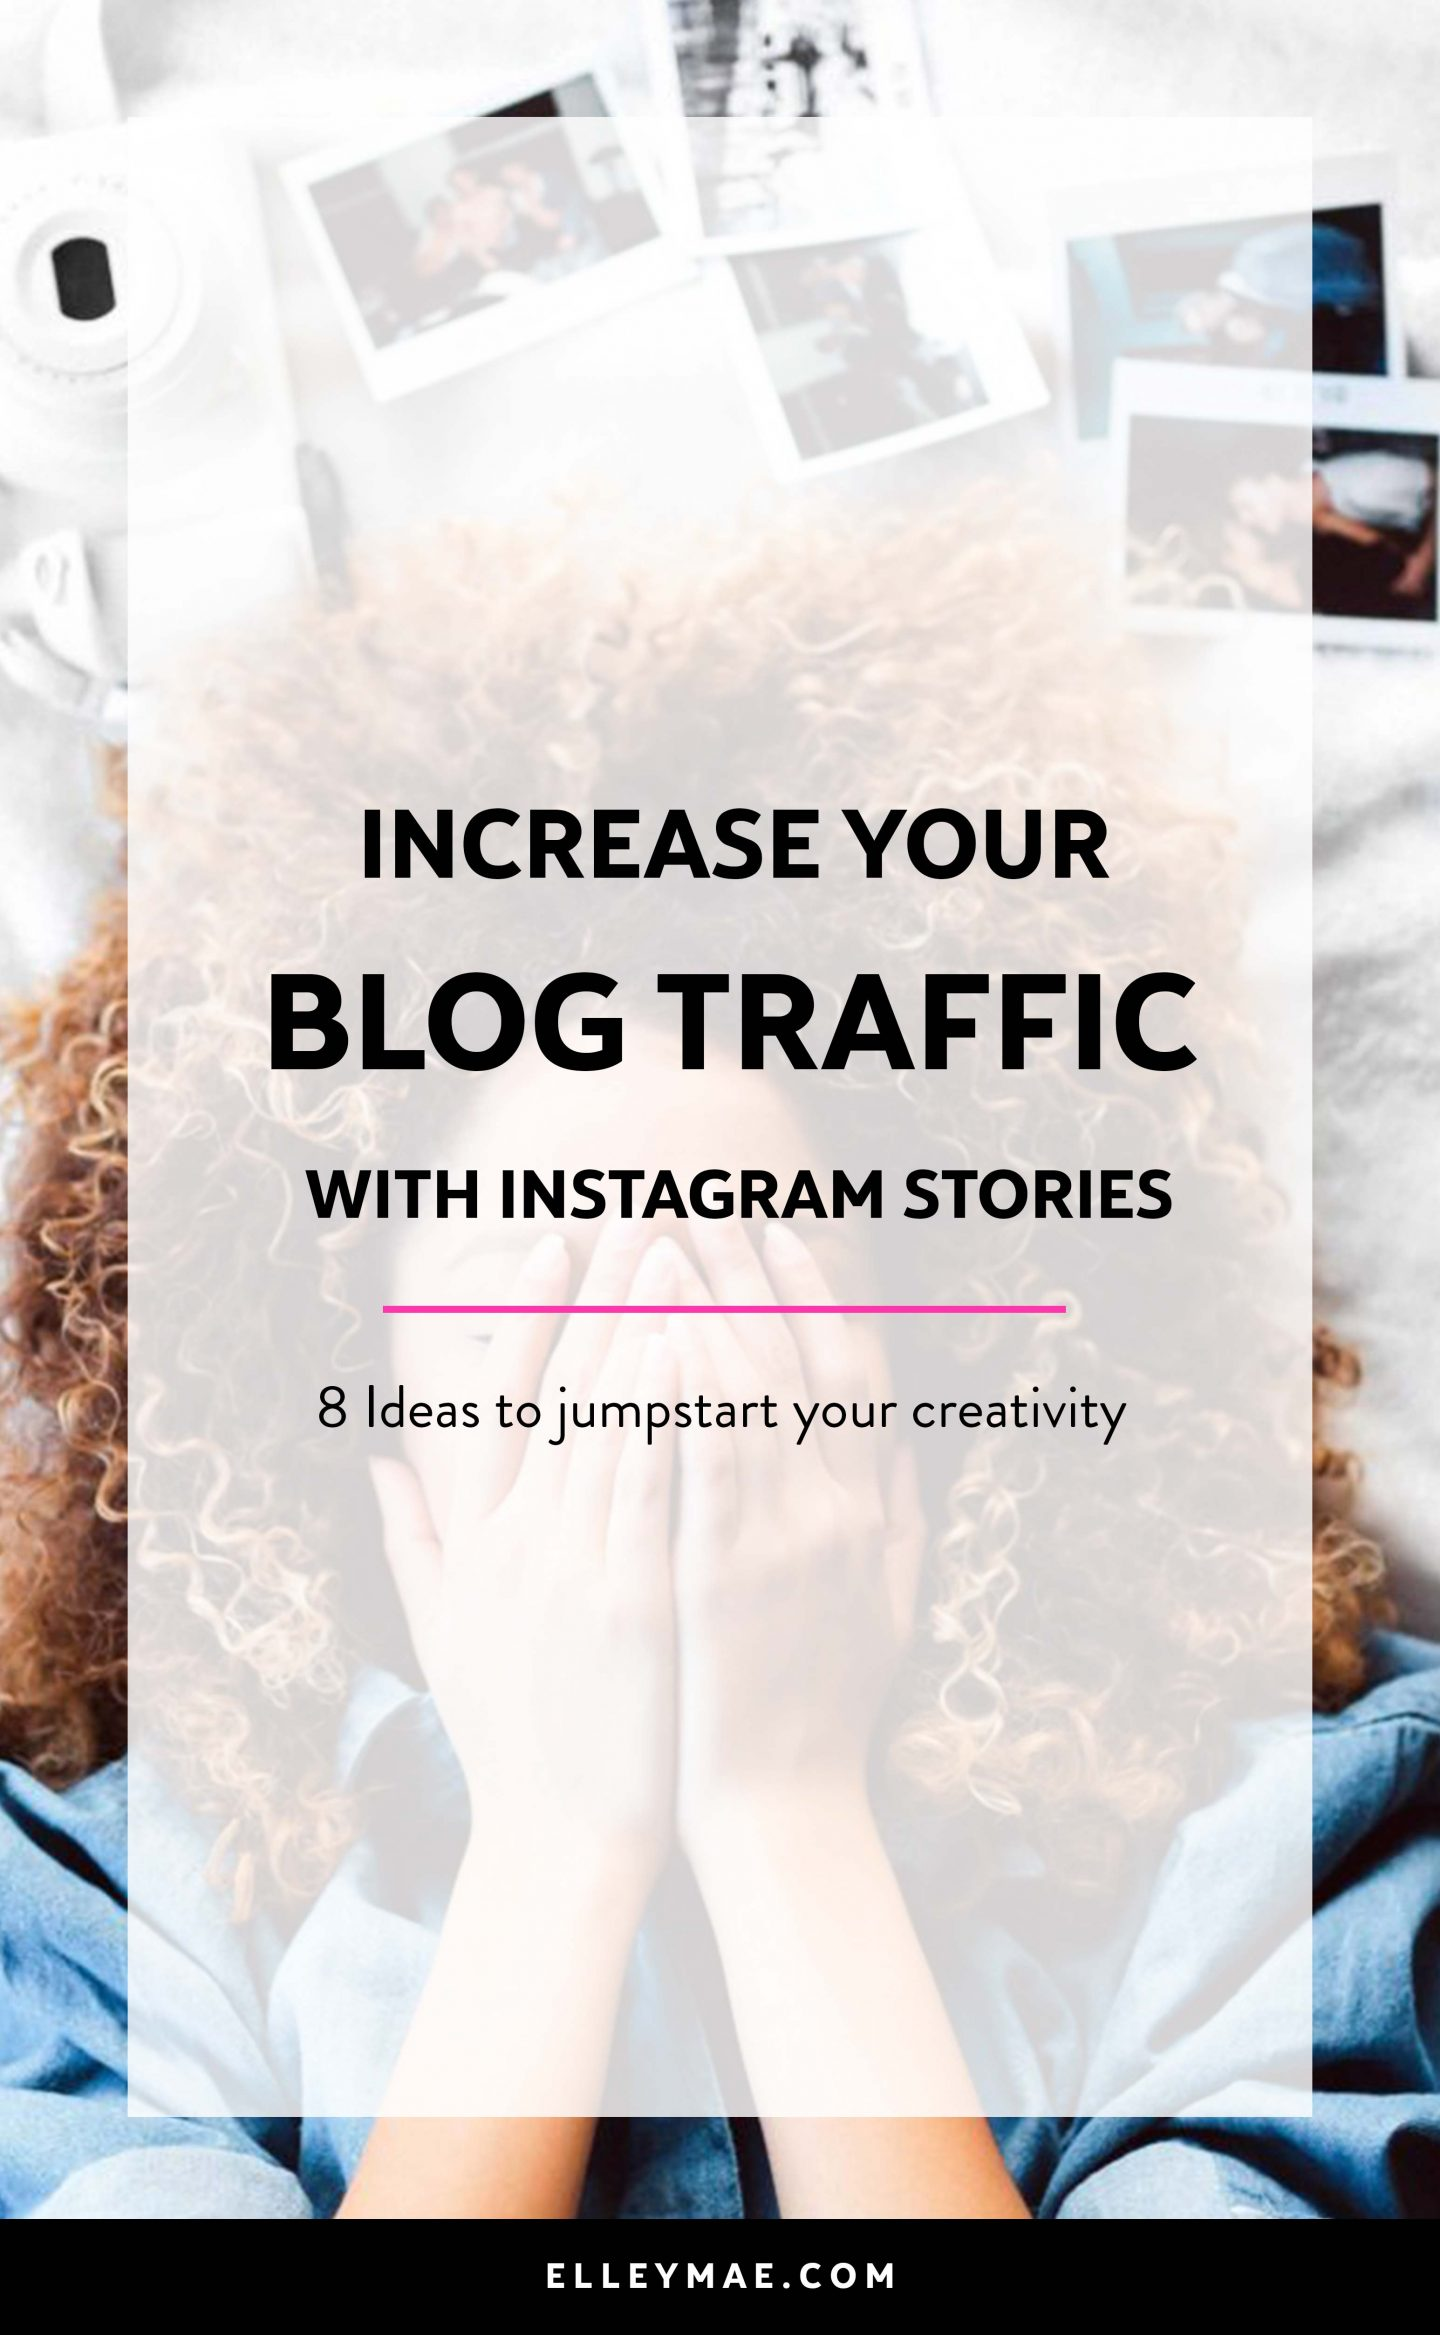 Want to learn how to grow your blog with Instagram stories? Well chick, you've come to the right place. In this post is a collection of 8 of the best ways to use Instagram stories to grow your blog - fun, fabulous & freakin' exciting! (Oh & they ACTUALLY WORK!) Learn more at ElleyMae.com | #instagram #instagrammarketing #growyourblog #instagramstory #instagramstories | Grow Your Blog | Instagram Marketing | Instagram Stories | Instagram Influencer